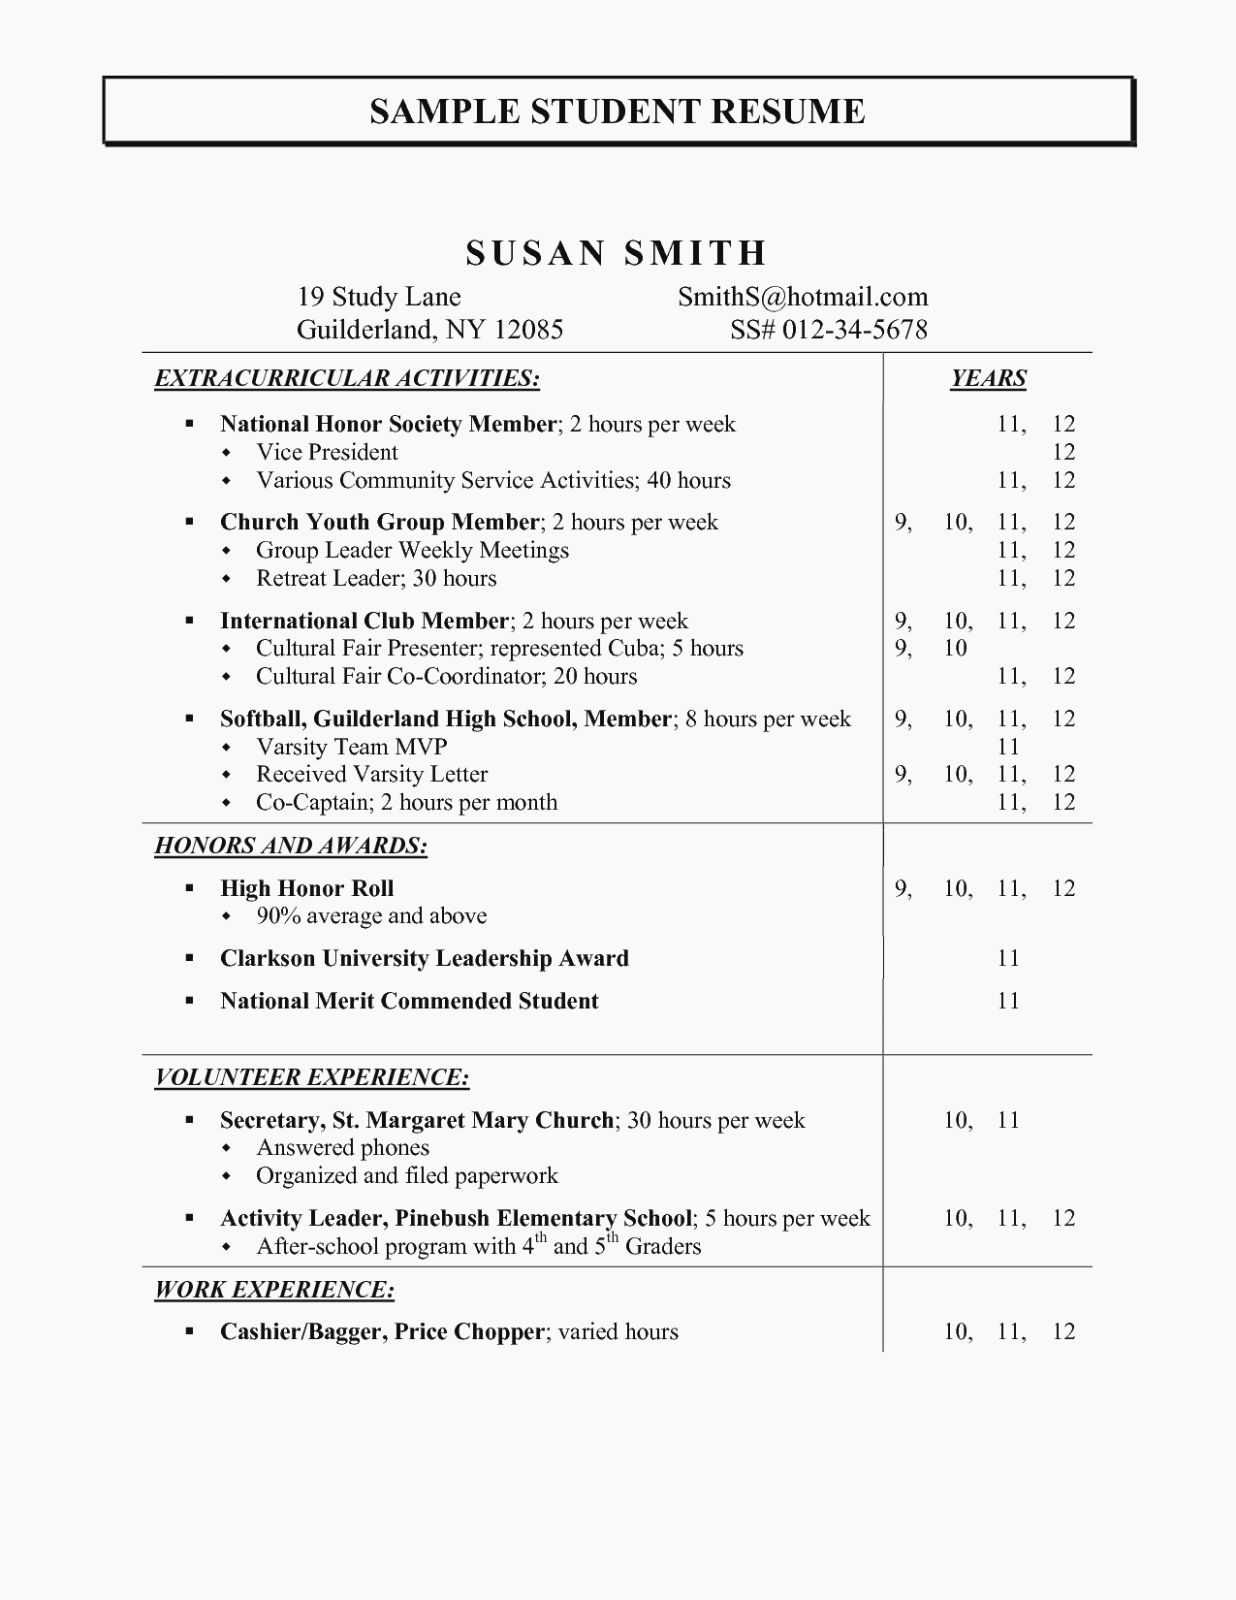 Activities Resume Template Inspirational Activities For Resume Valid Extracurricular Sample Resume Examples Extra Curricular Activities Resume